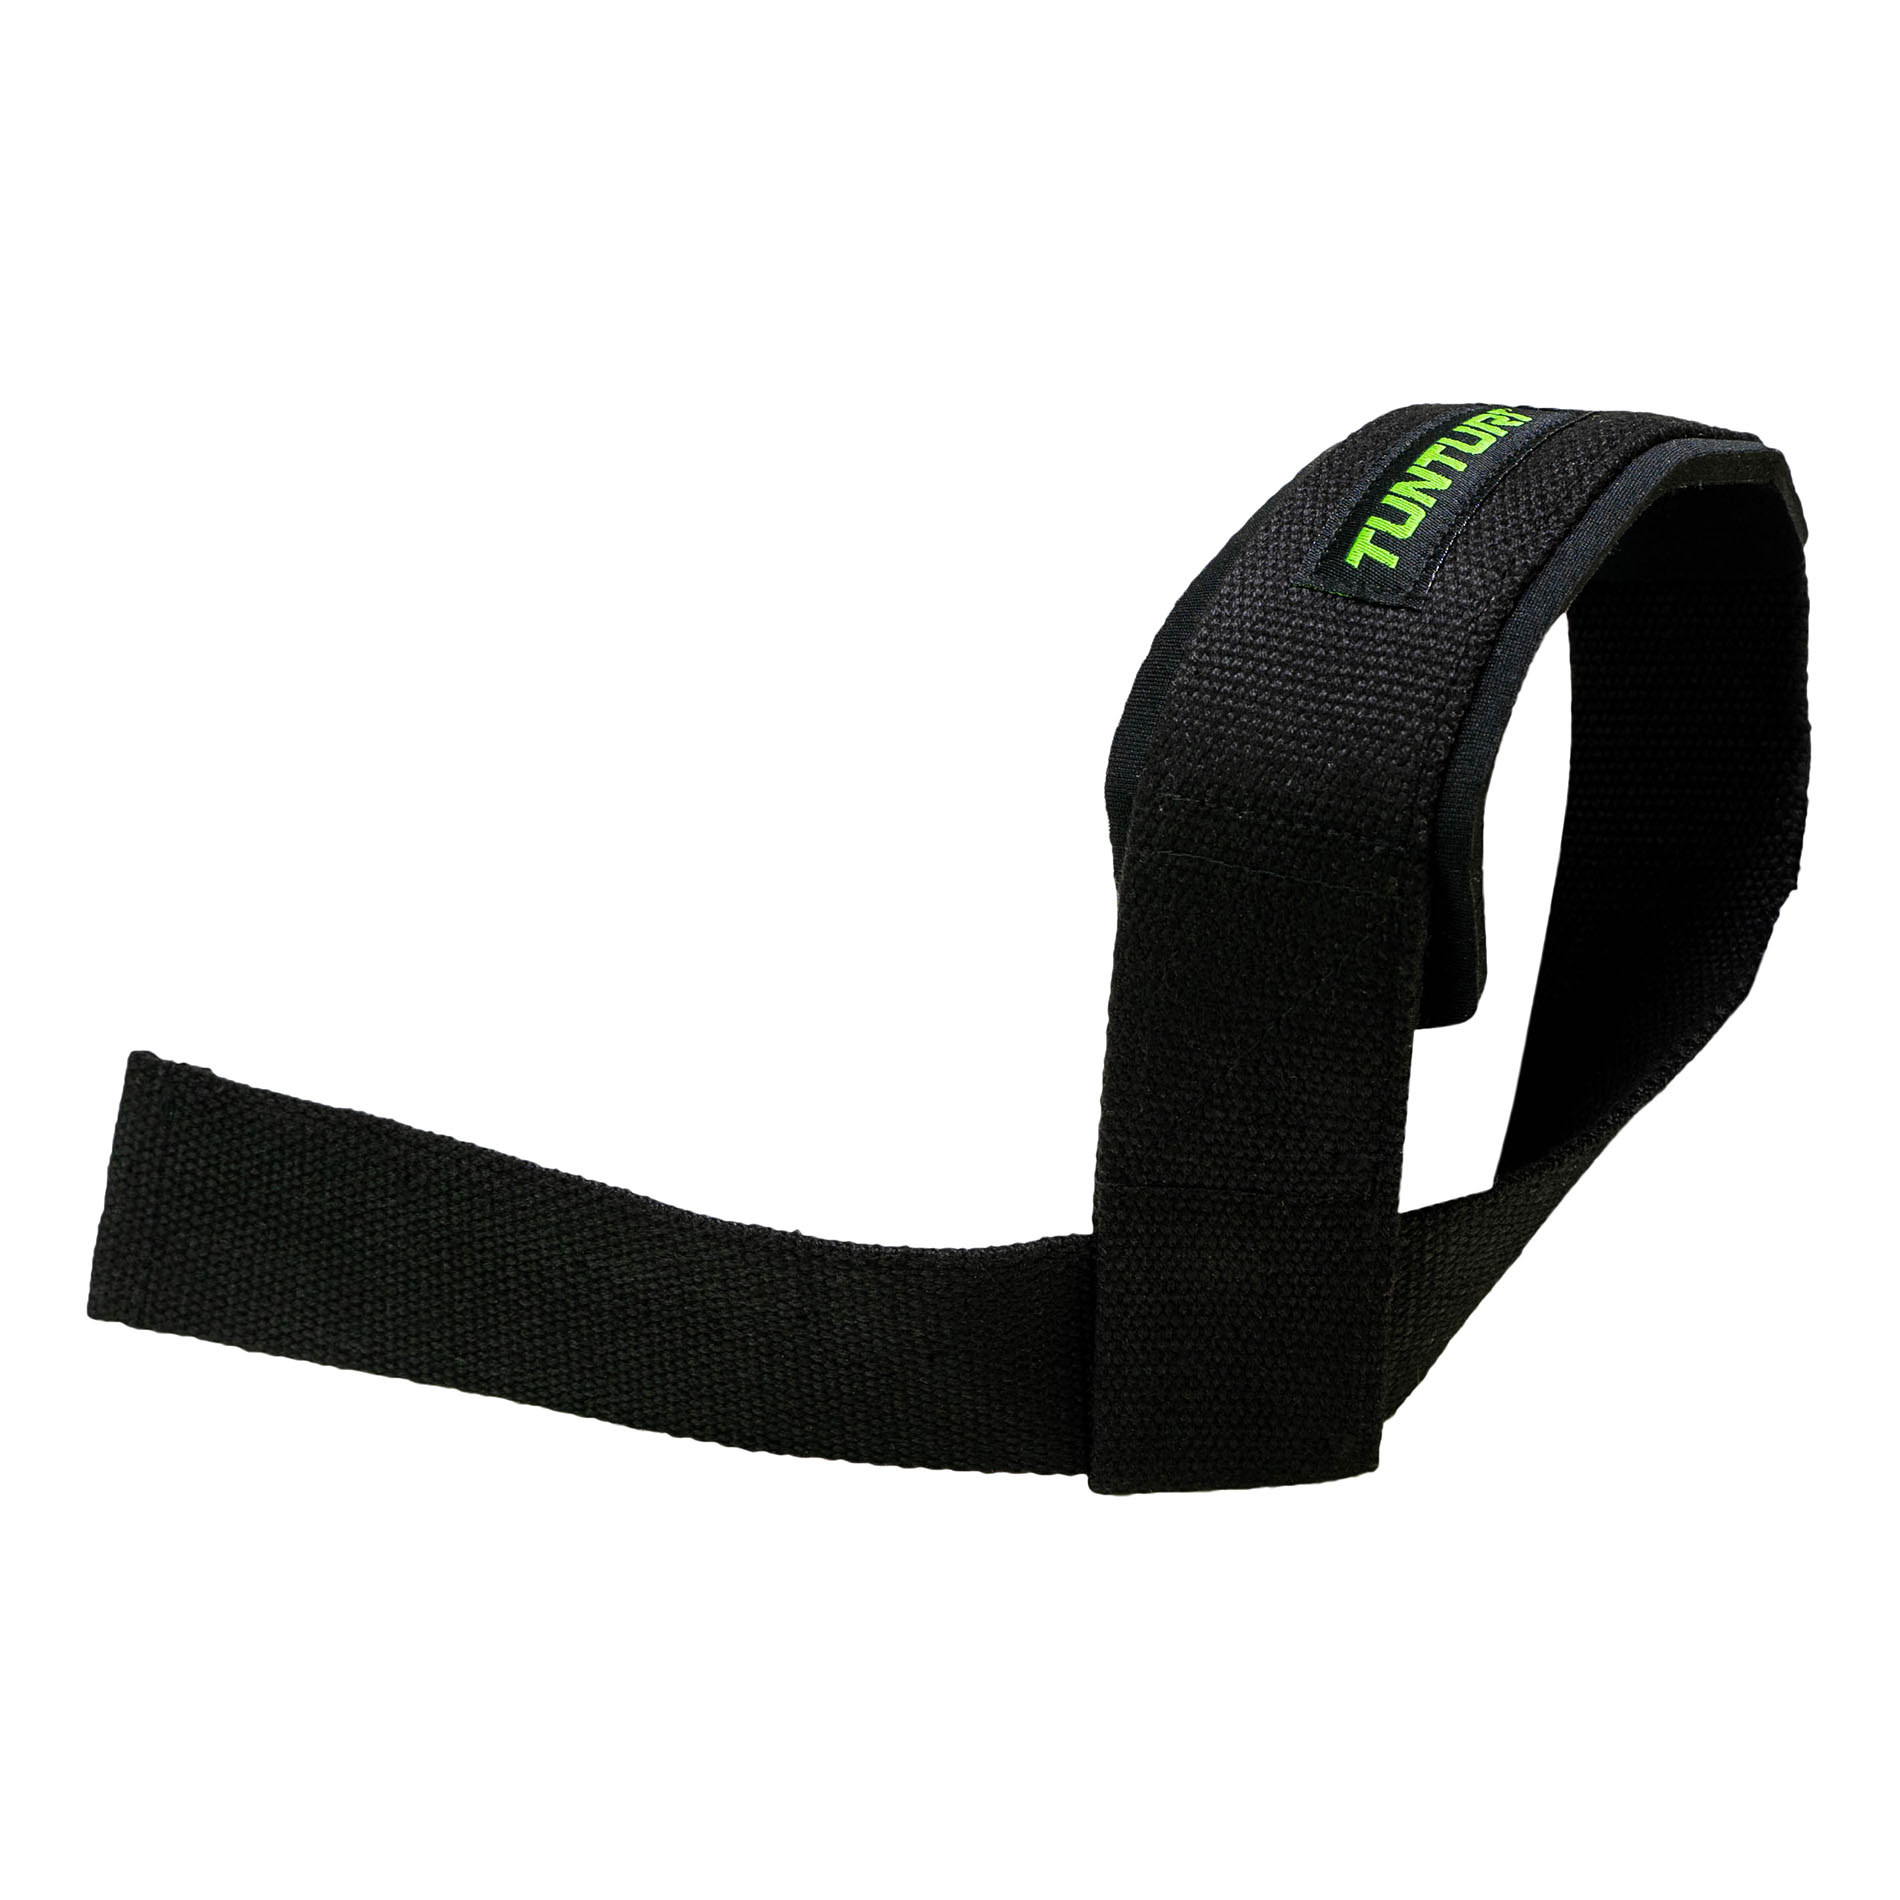 Padded Power Lifting Straps